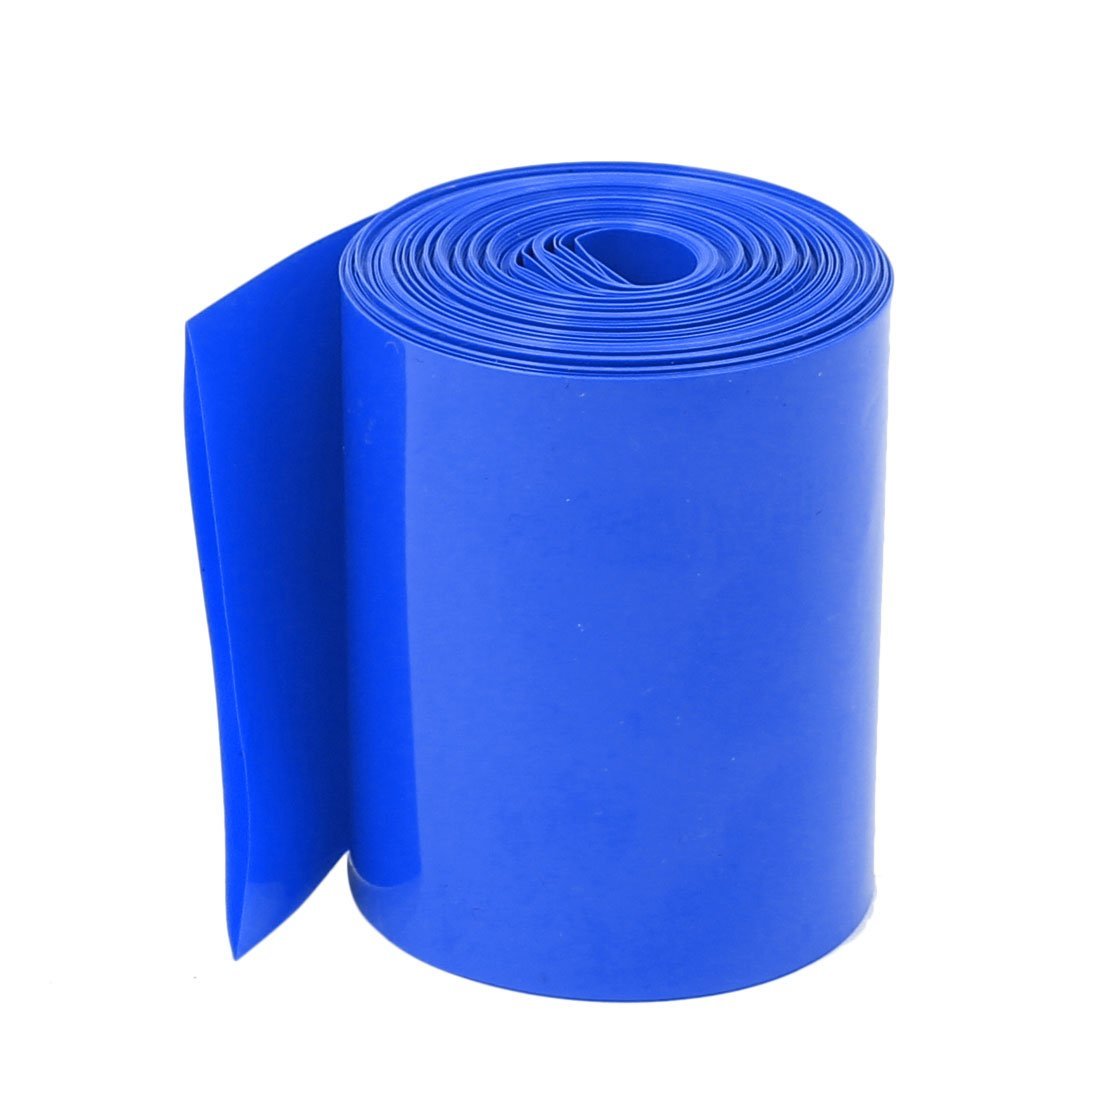 sourcingmap® 32mm Diametro 8M DI LUNGHEZZA IN PVC Blu tubo termoretraibile per 2 x Batteria 18650 sourcing map SYNCTEA005320